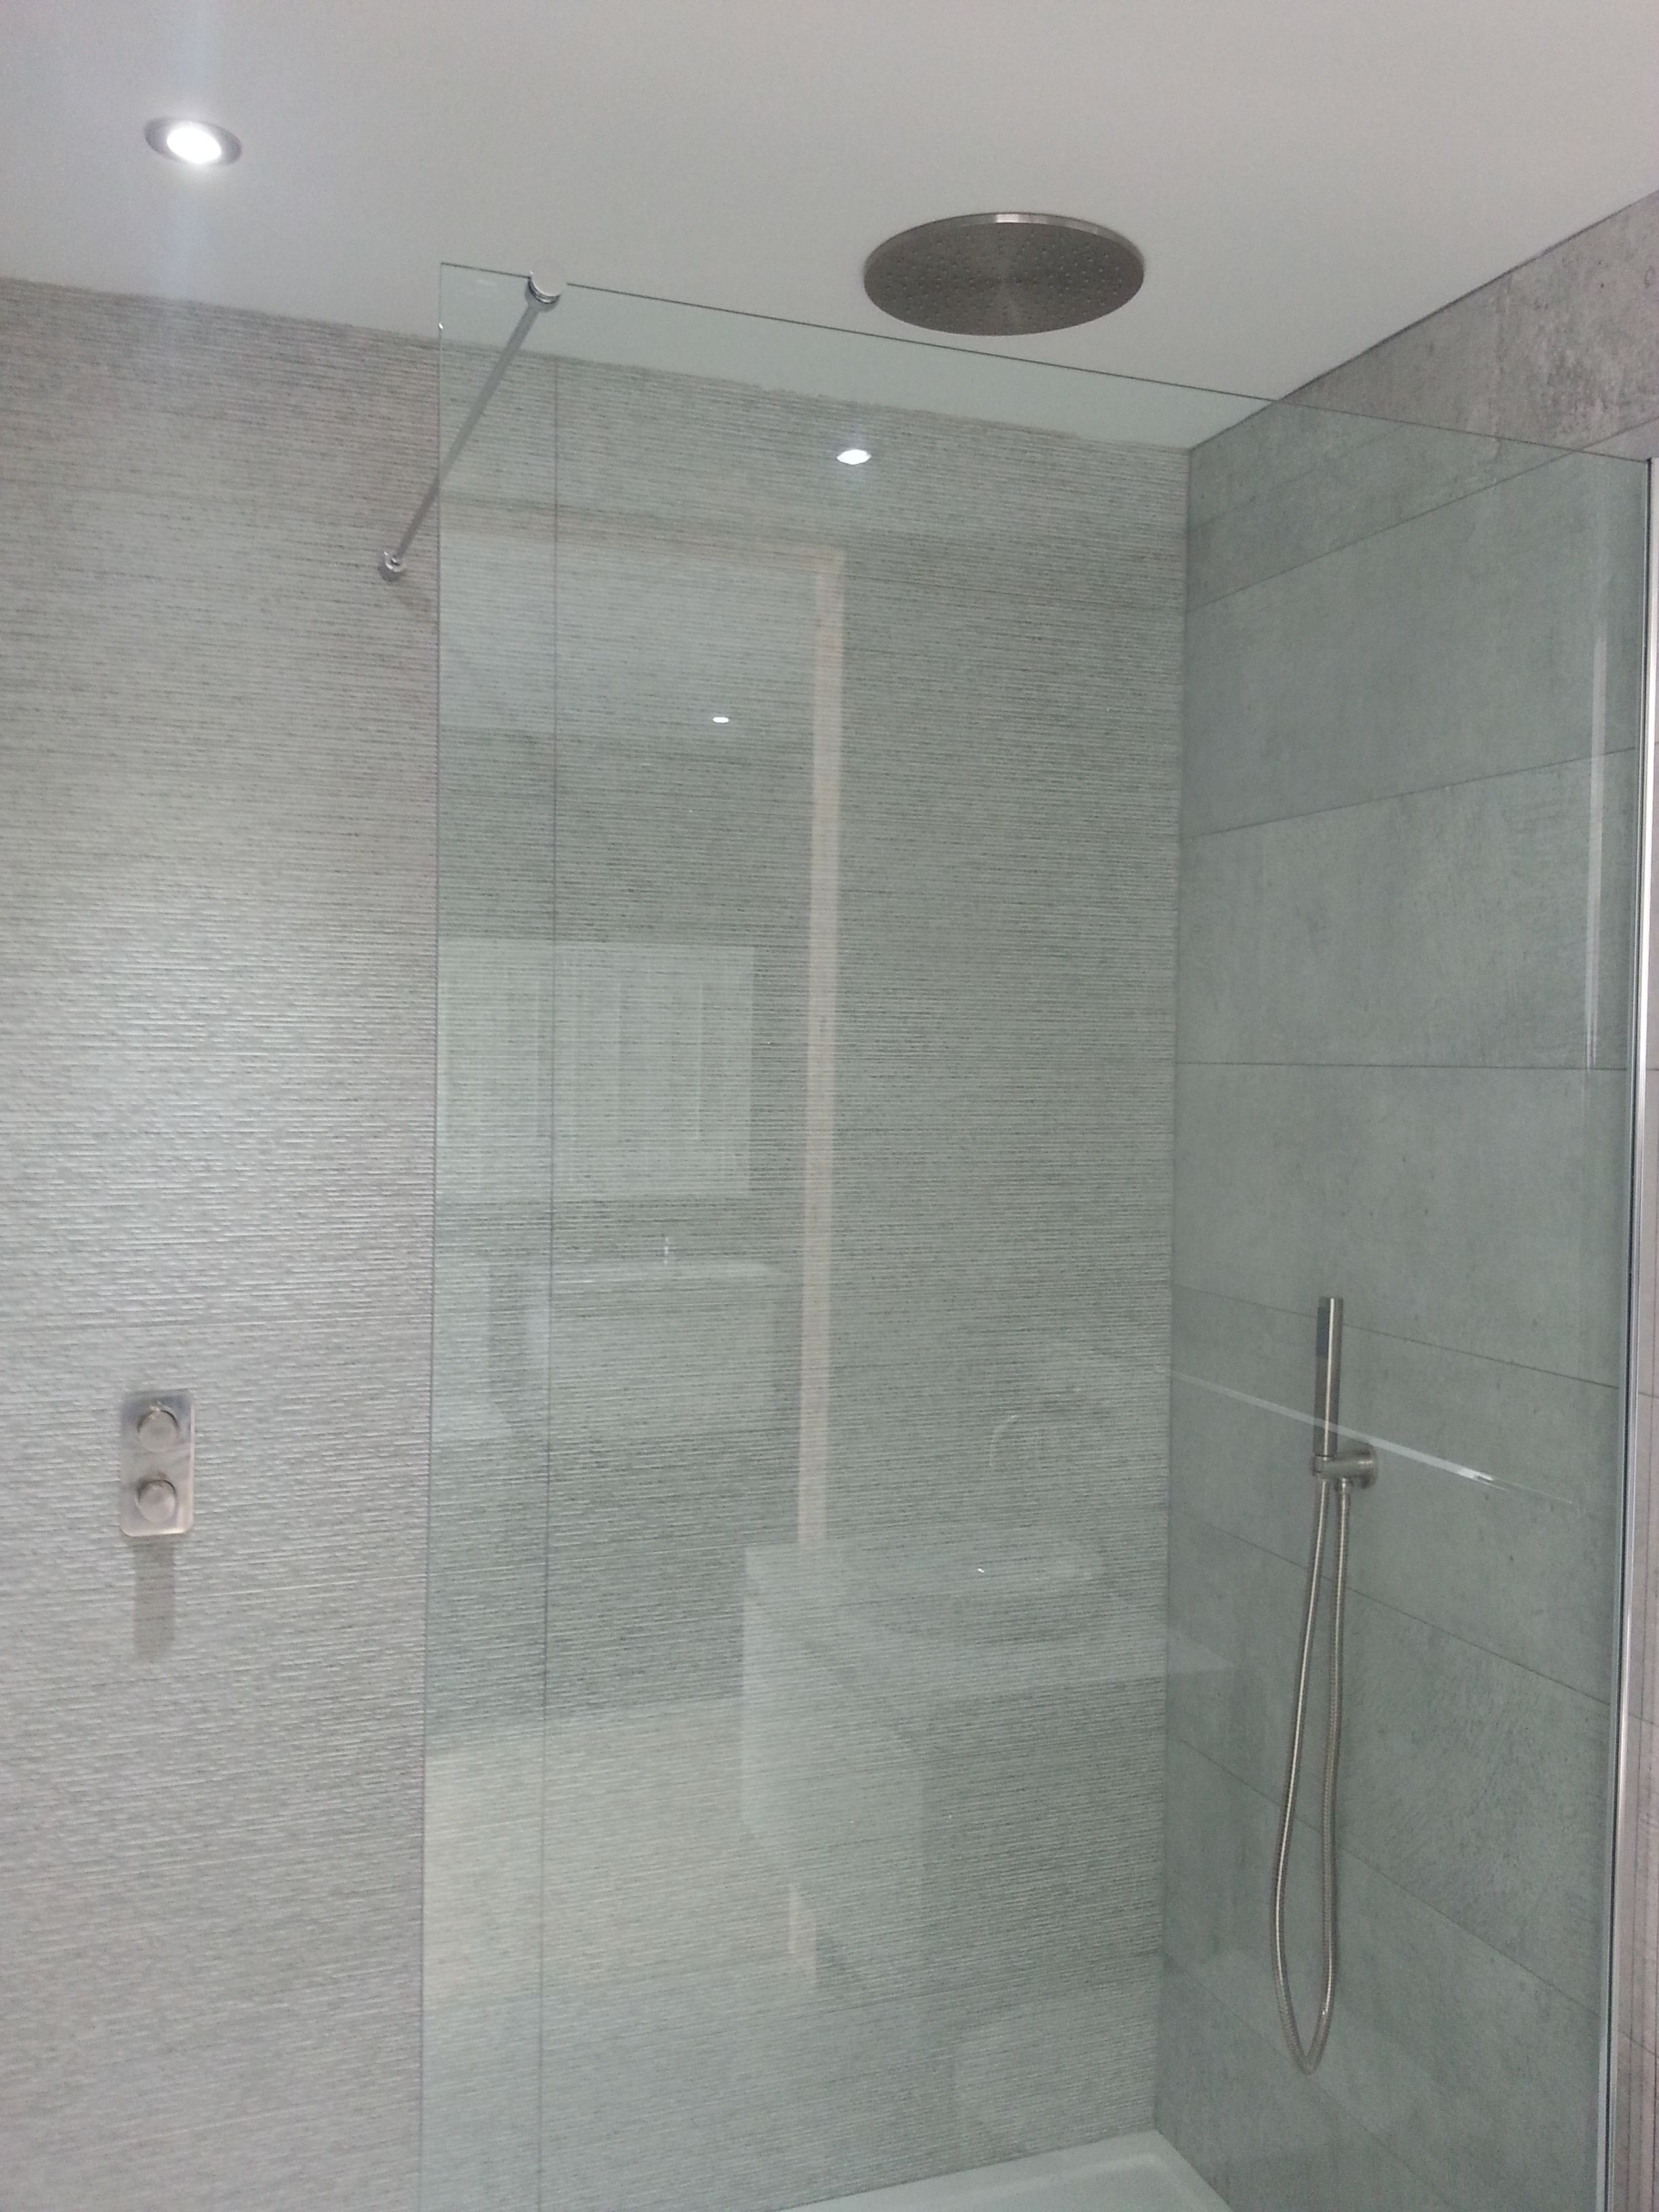 Gorgeous Neutrally Tiled Shower With Vado Tablet Valve Shower Head And Handset Kit In Brushed Nickel Rec Amazing Bathrooms Bathroom Design Luxurious Bedrooms